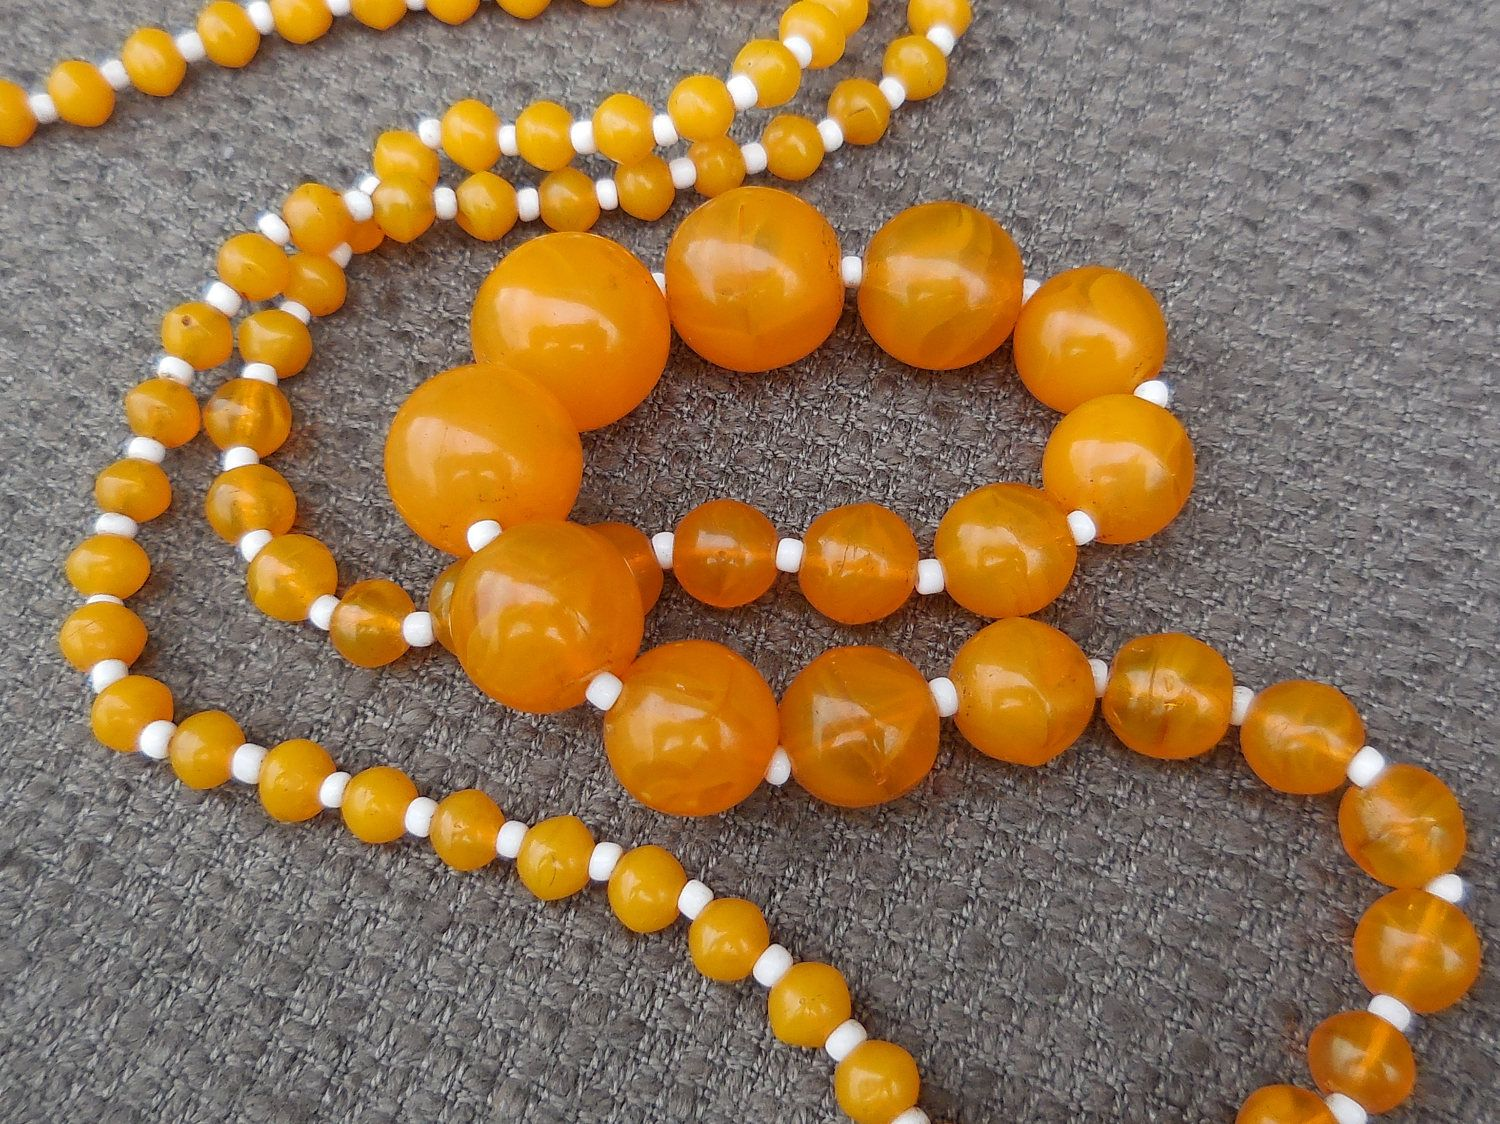 1930s Rare ORANGE Swirl Stunning GLASS Bead NECKLACE...Antique Art Glass Beads...Art Deco Jewellery...Unusual Statement Necklace! by SlimandSugar on Etsy